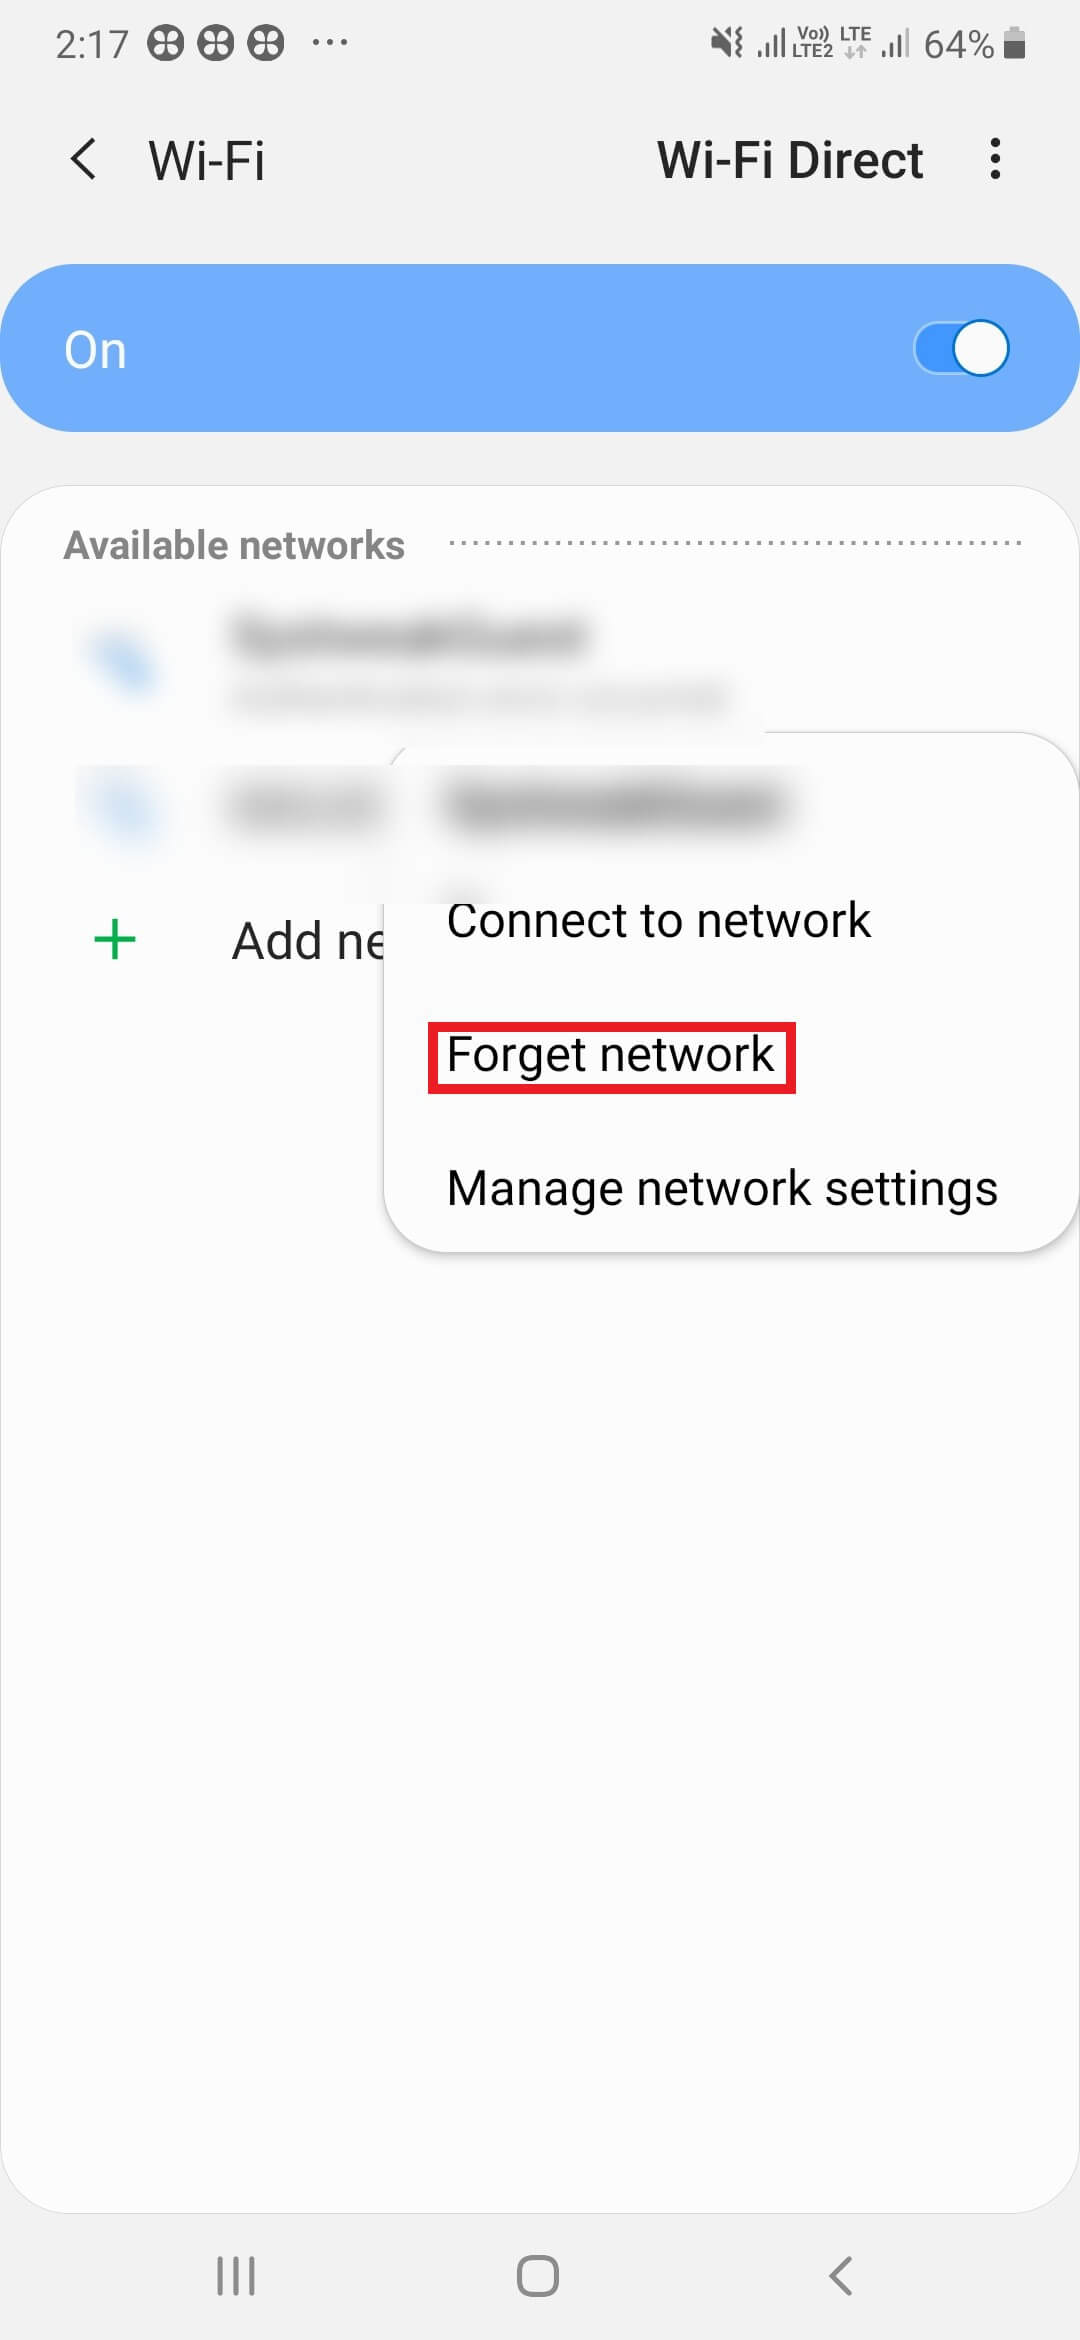 Forget Network - Android not connecting to wifi